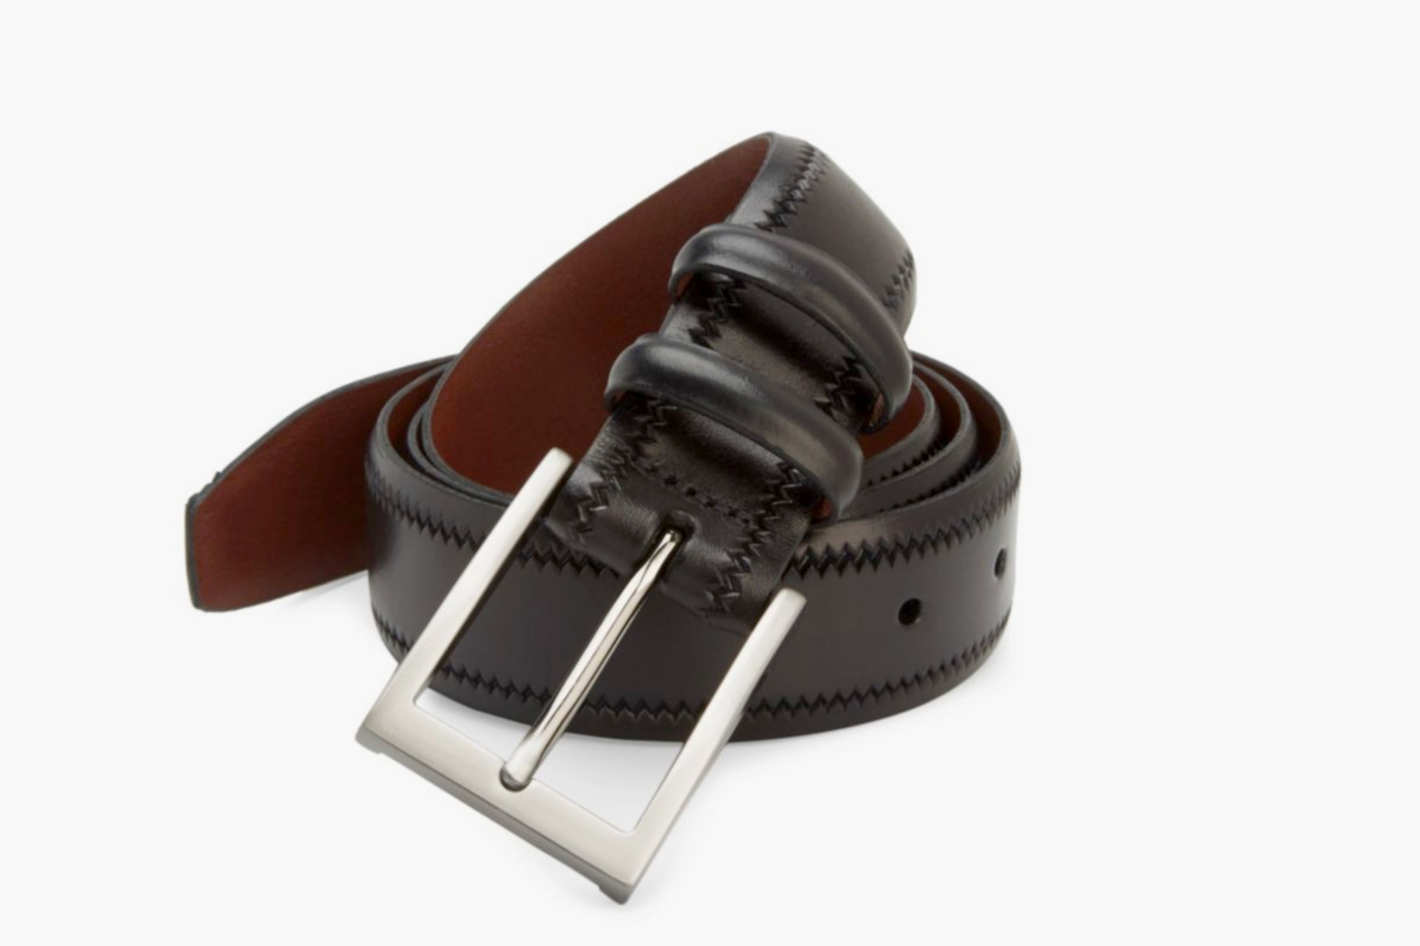 Saks Fifth Avenue Leather Zig-Zag Trim Belt